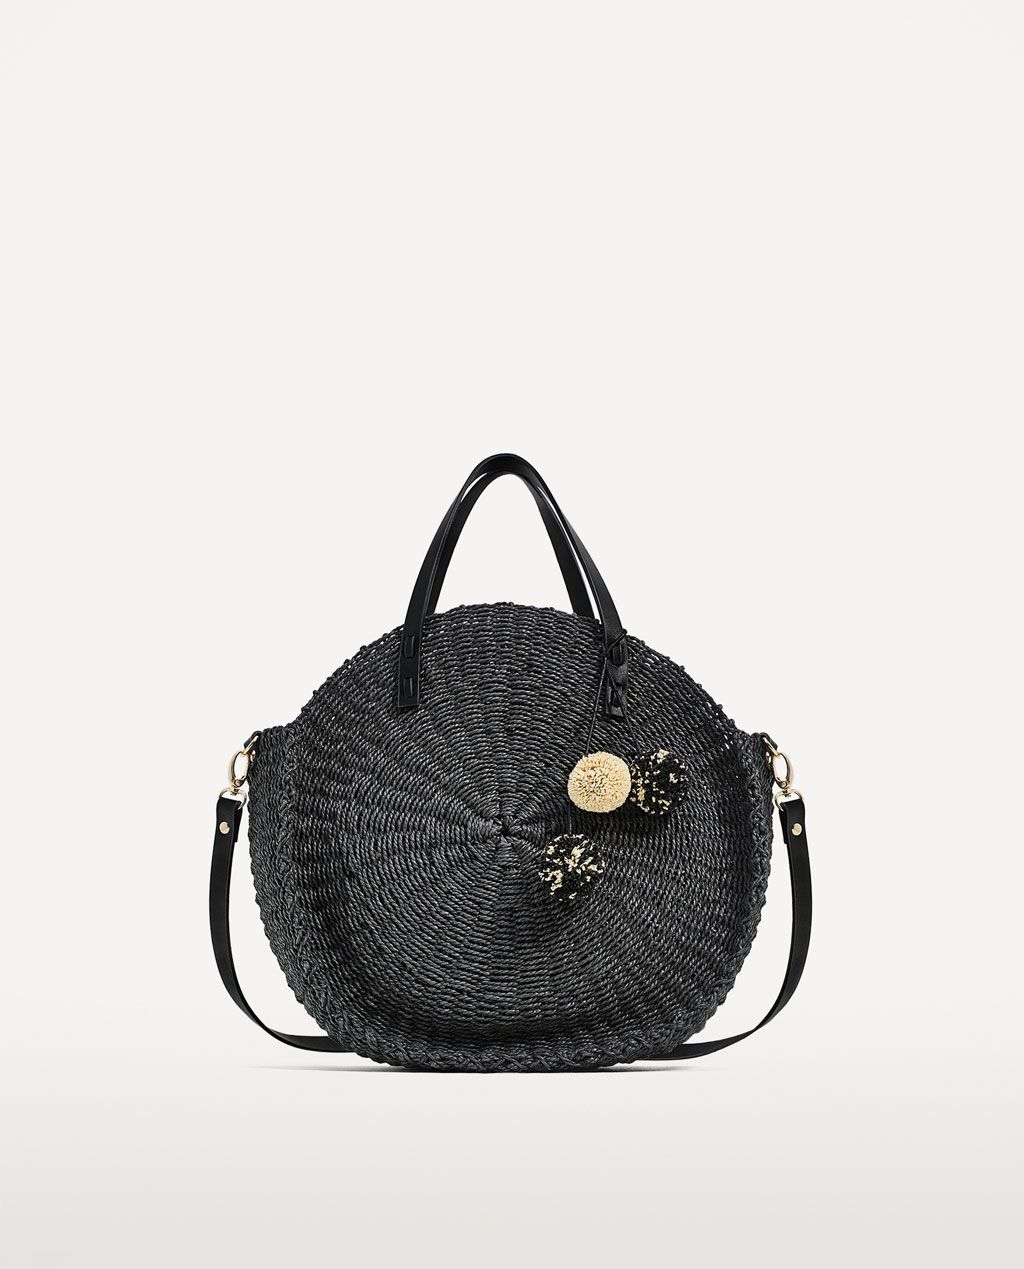 BRAIDED TOTE BAG WITH POMPOMS-Woven bags-BAGS-WOMAN  c6d9094c03f9d